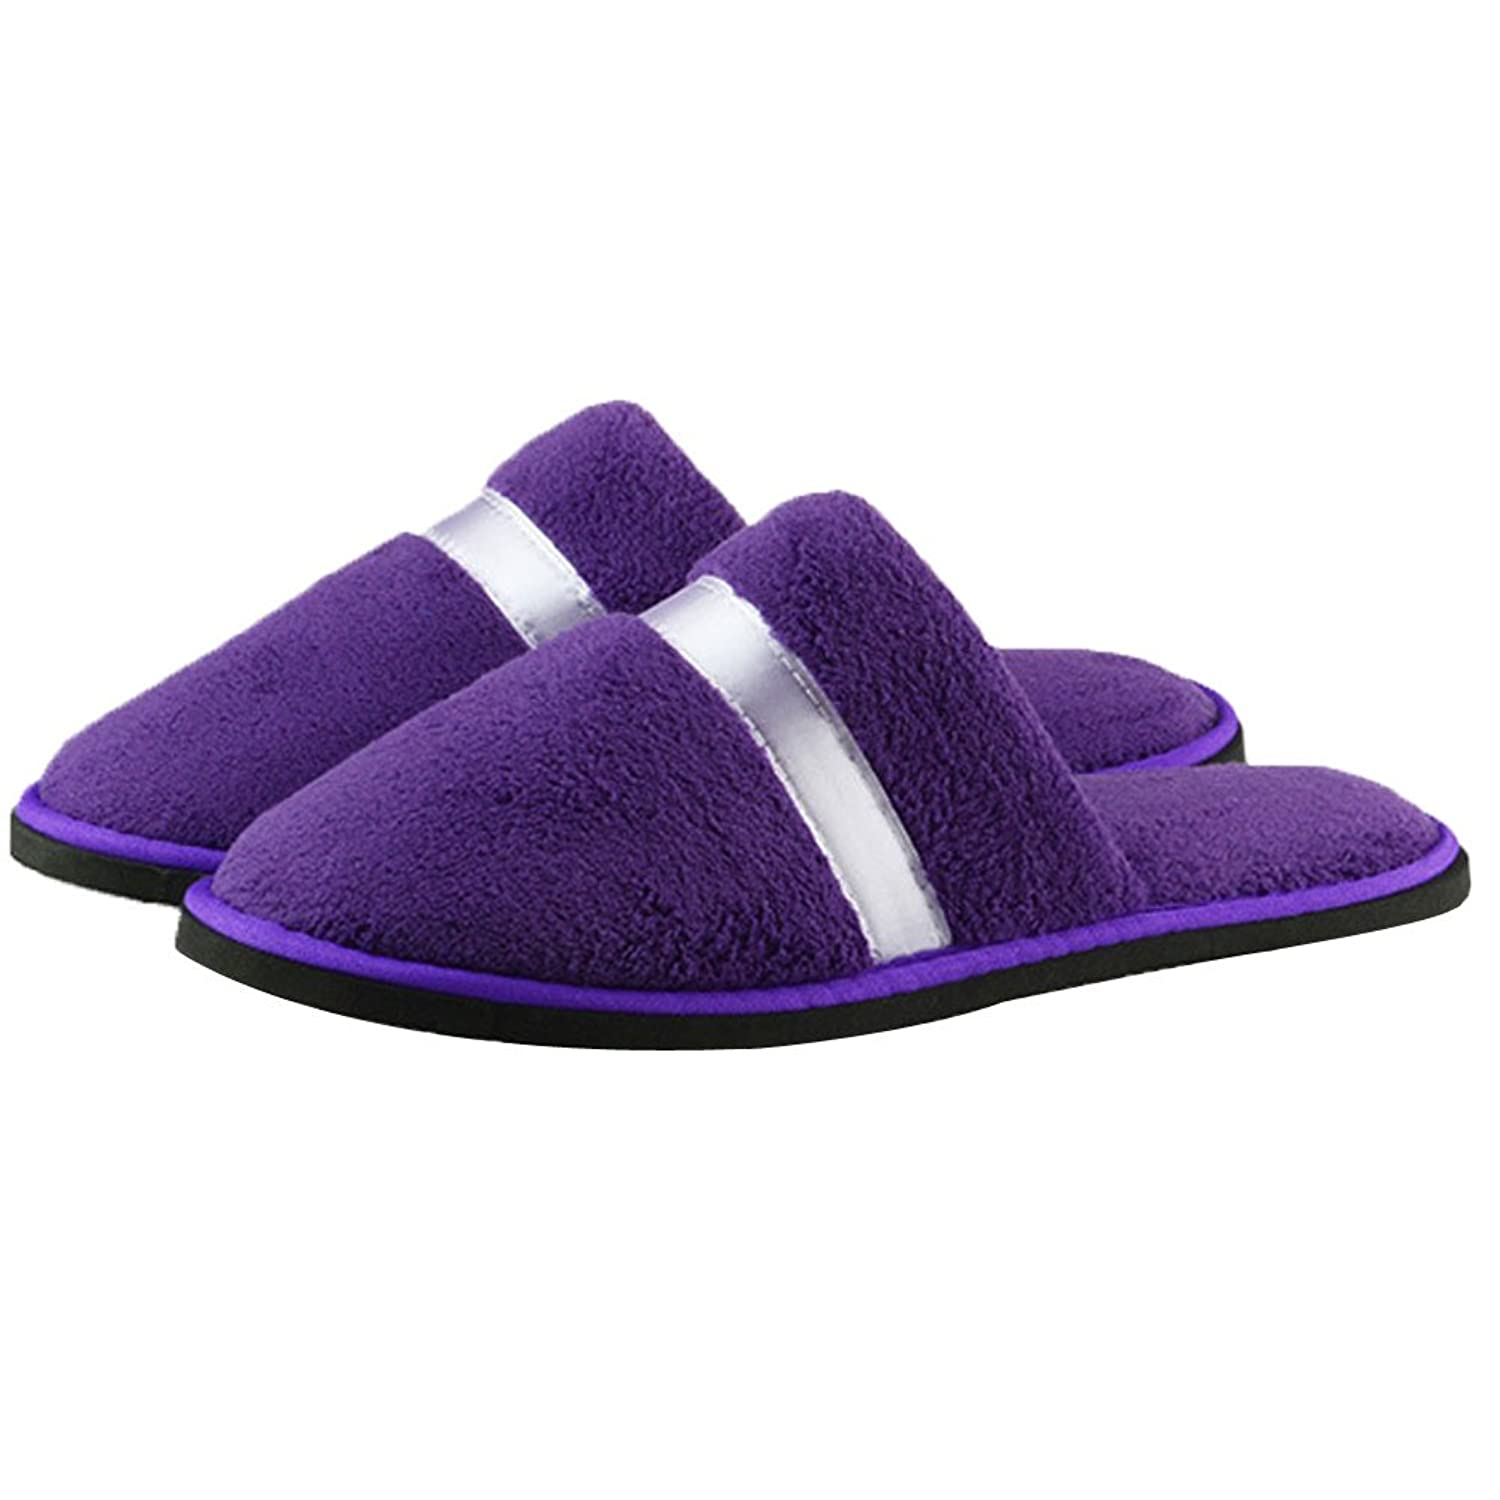 free shipping RoseSummer Women Men Open Toe Winter Slippers